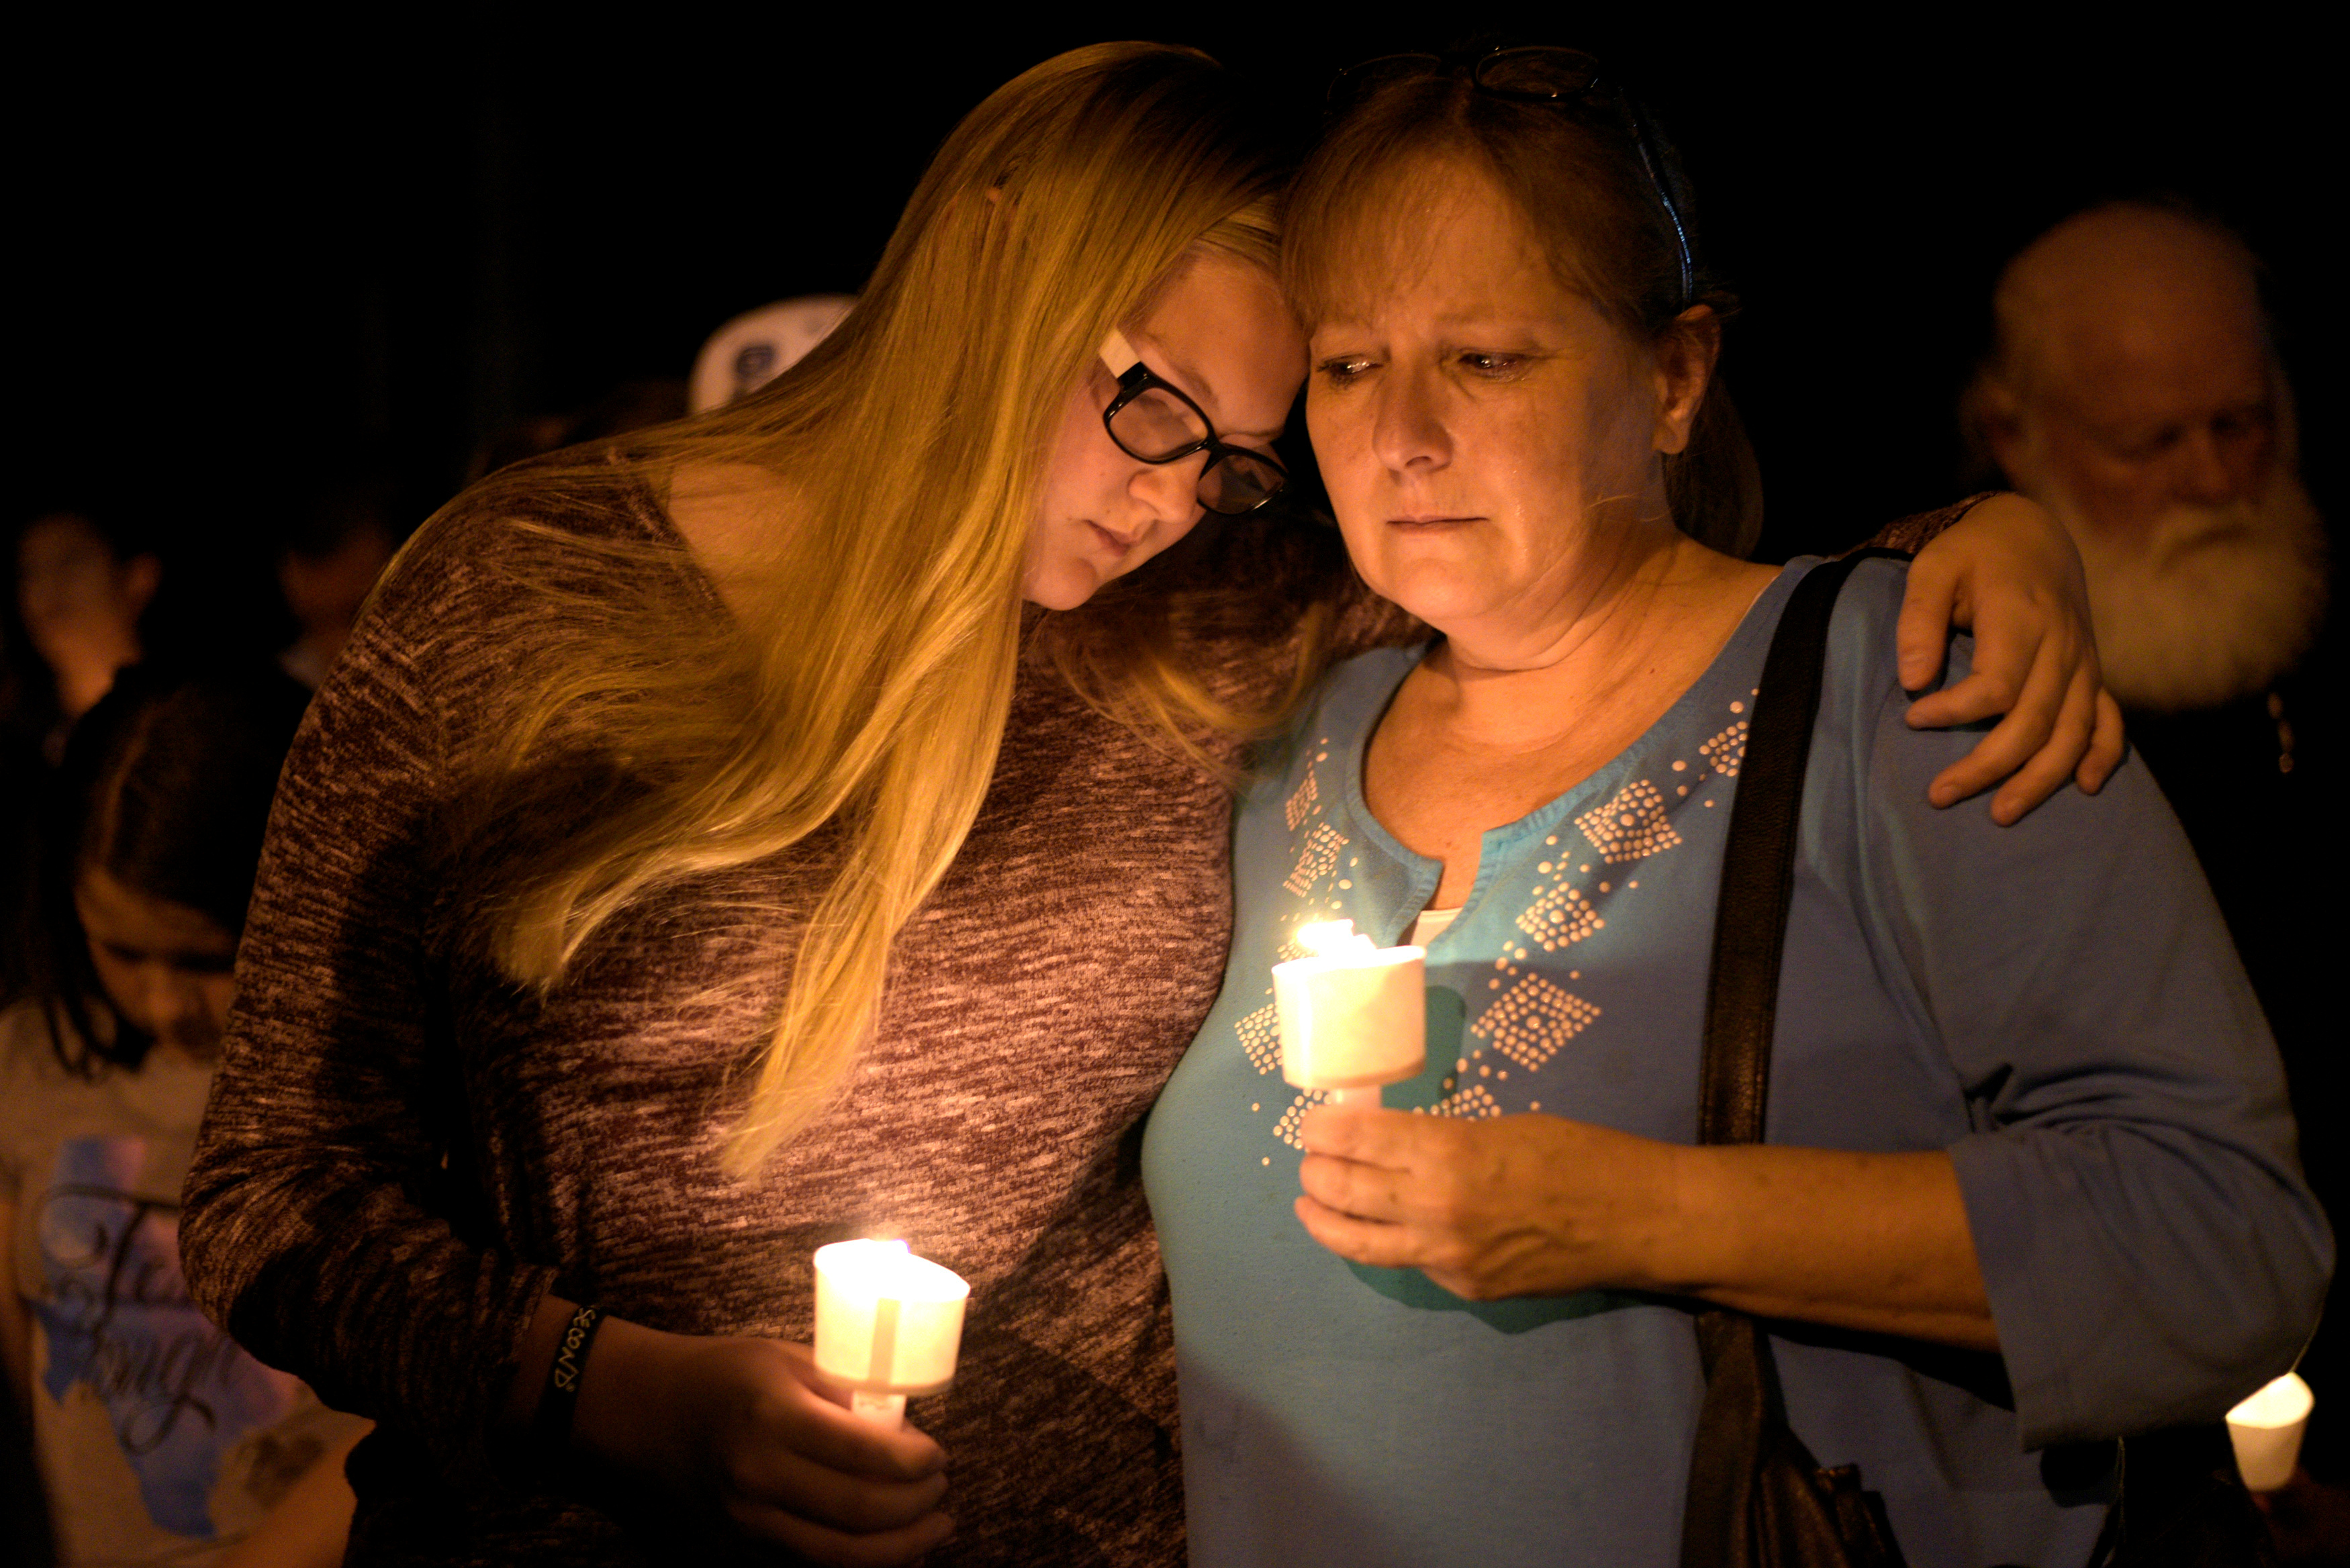 Terri and Brooke Kalinec attend a candle light vigil after a mass shooting at the First Baptist Church in Sutherland Springs, Texas, Nov. 5, 2017.